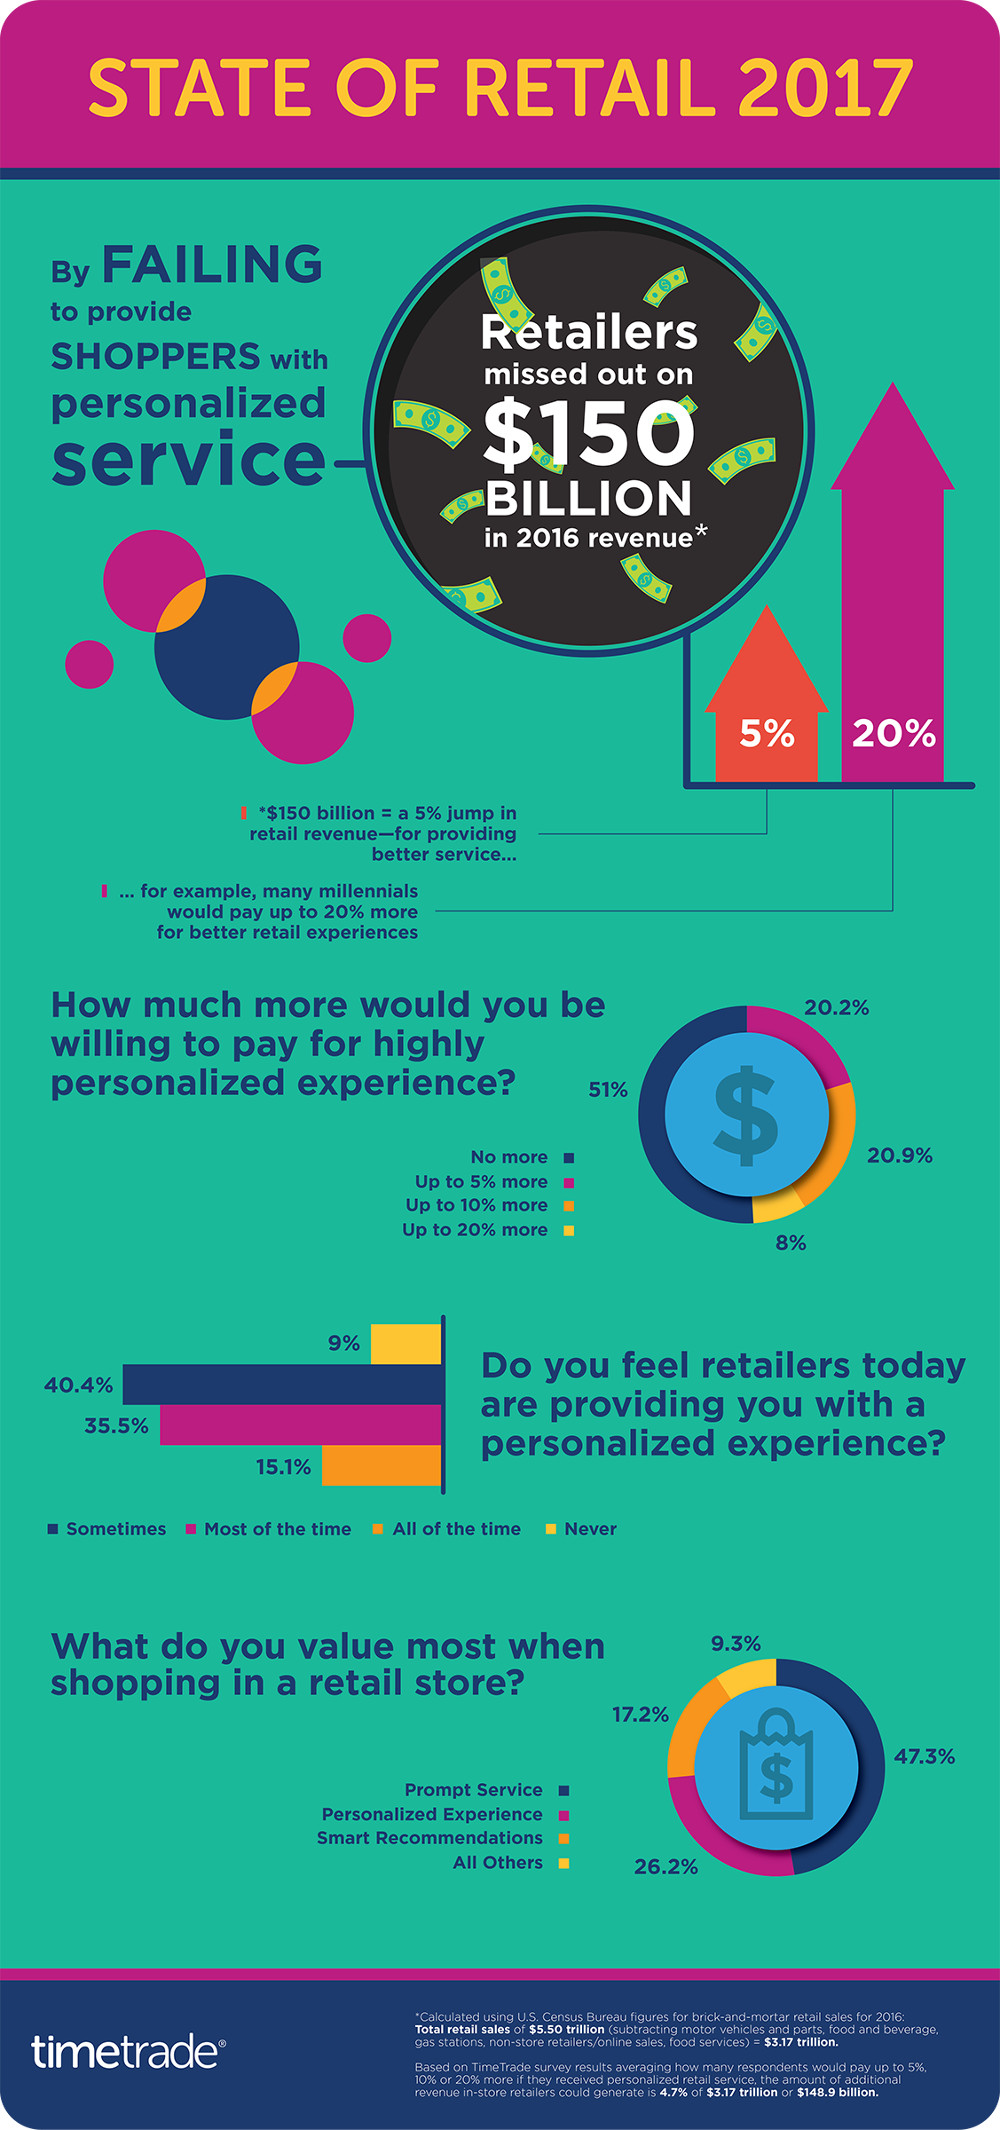 Personalize Your Shoppers Retail Experiences